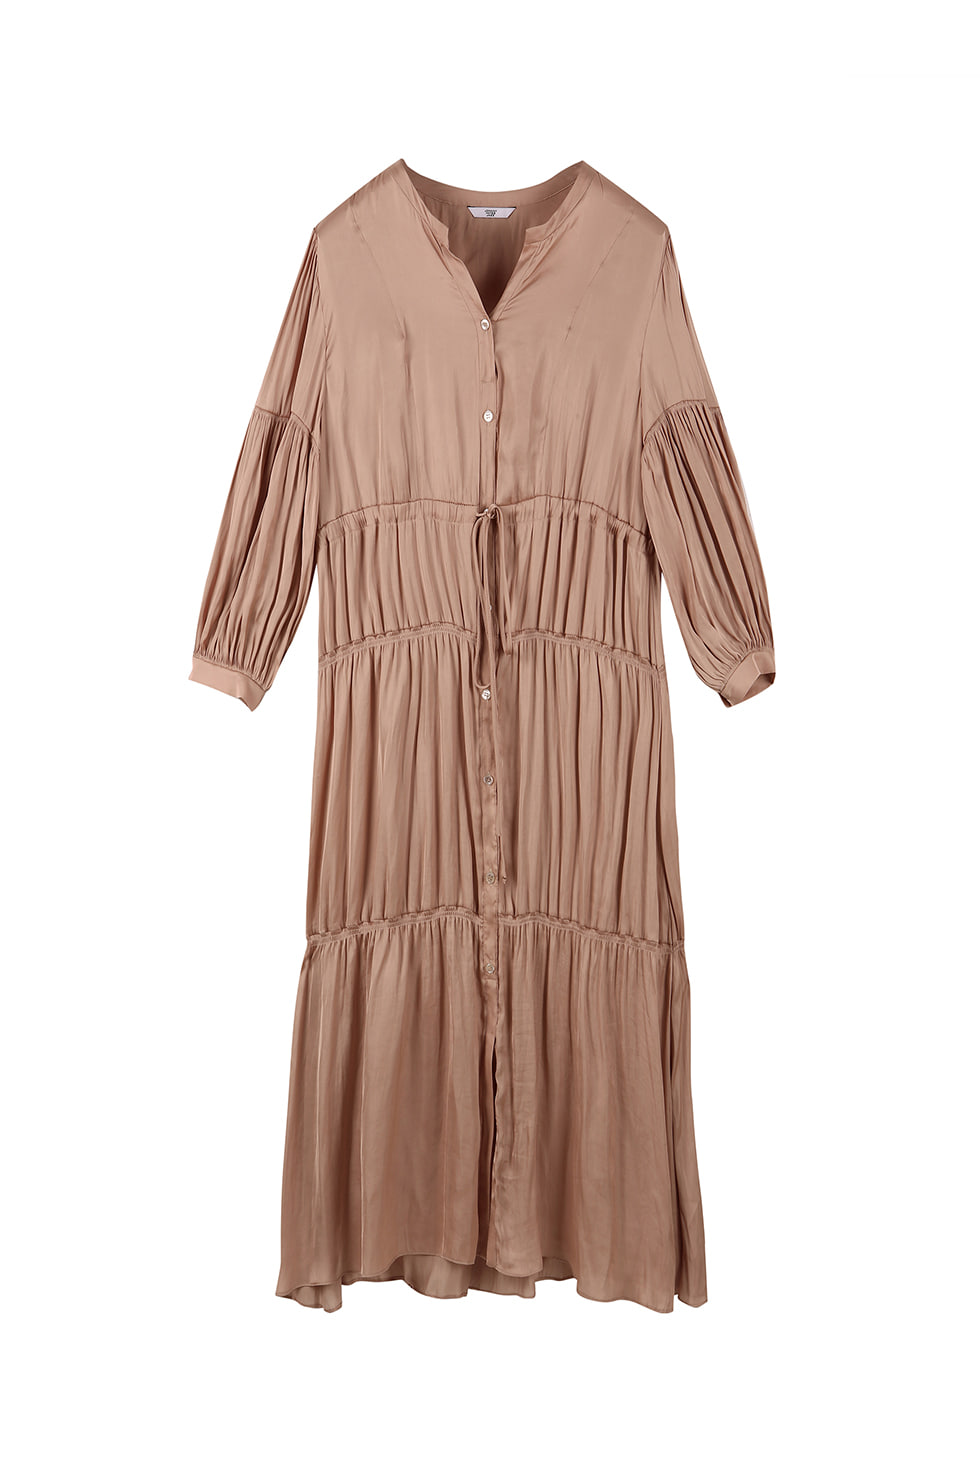 SHIRRING LONG DRESS - BEIGE